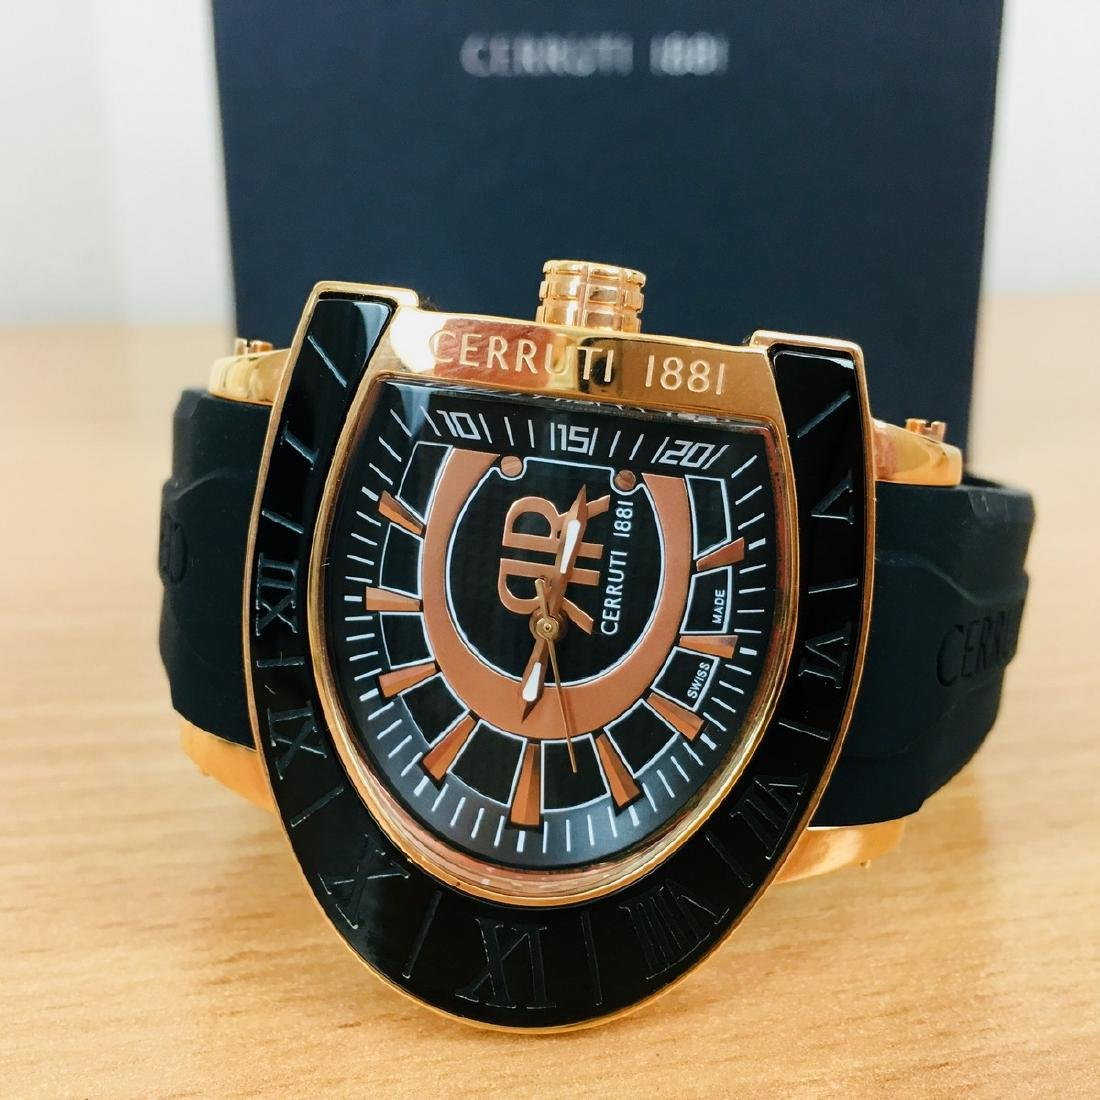 Cerruti 1881 – Men's Swiss Made Gold Plated Luxurious